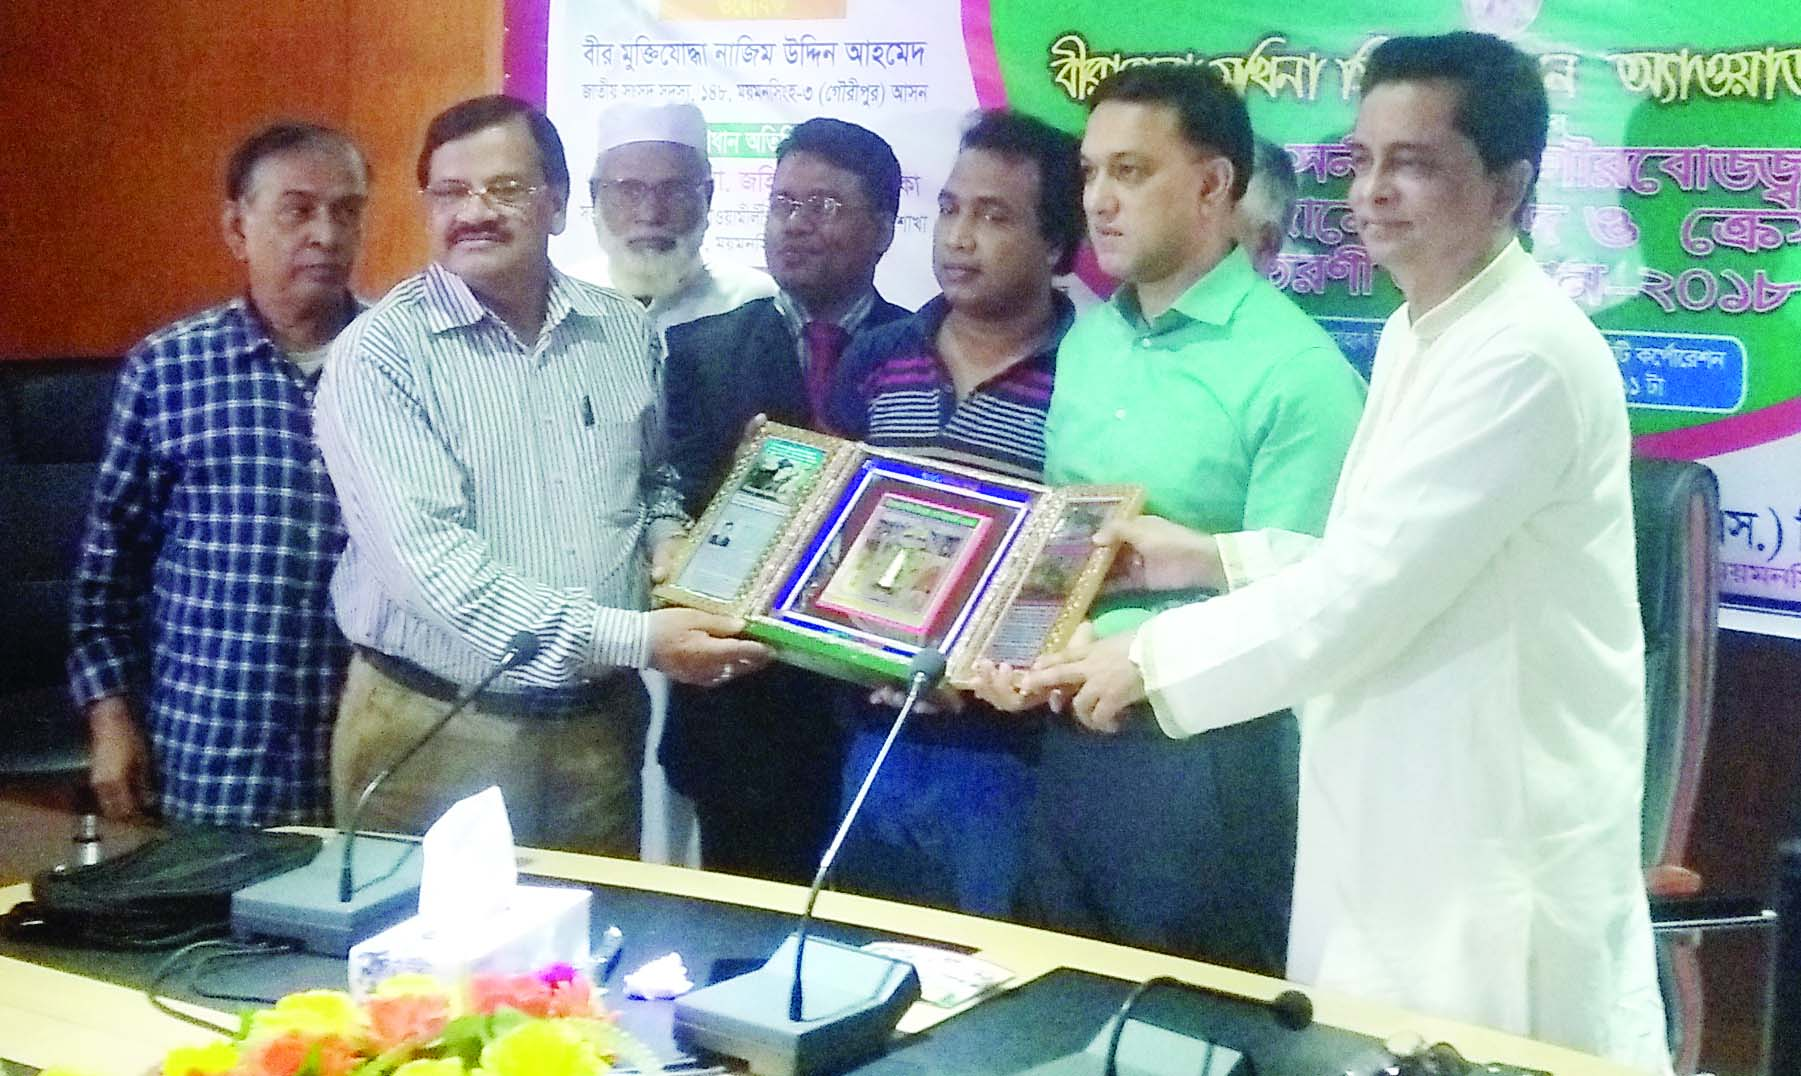 GOURIPUR (Mymensingh): The Birangana Sakhina Silver Pen Awards were distributed among the winners at Shahid Shahab Uddin Conference Room of Mymensingh City Corporation on Saturday.